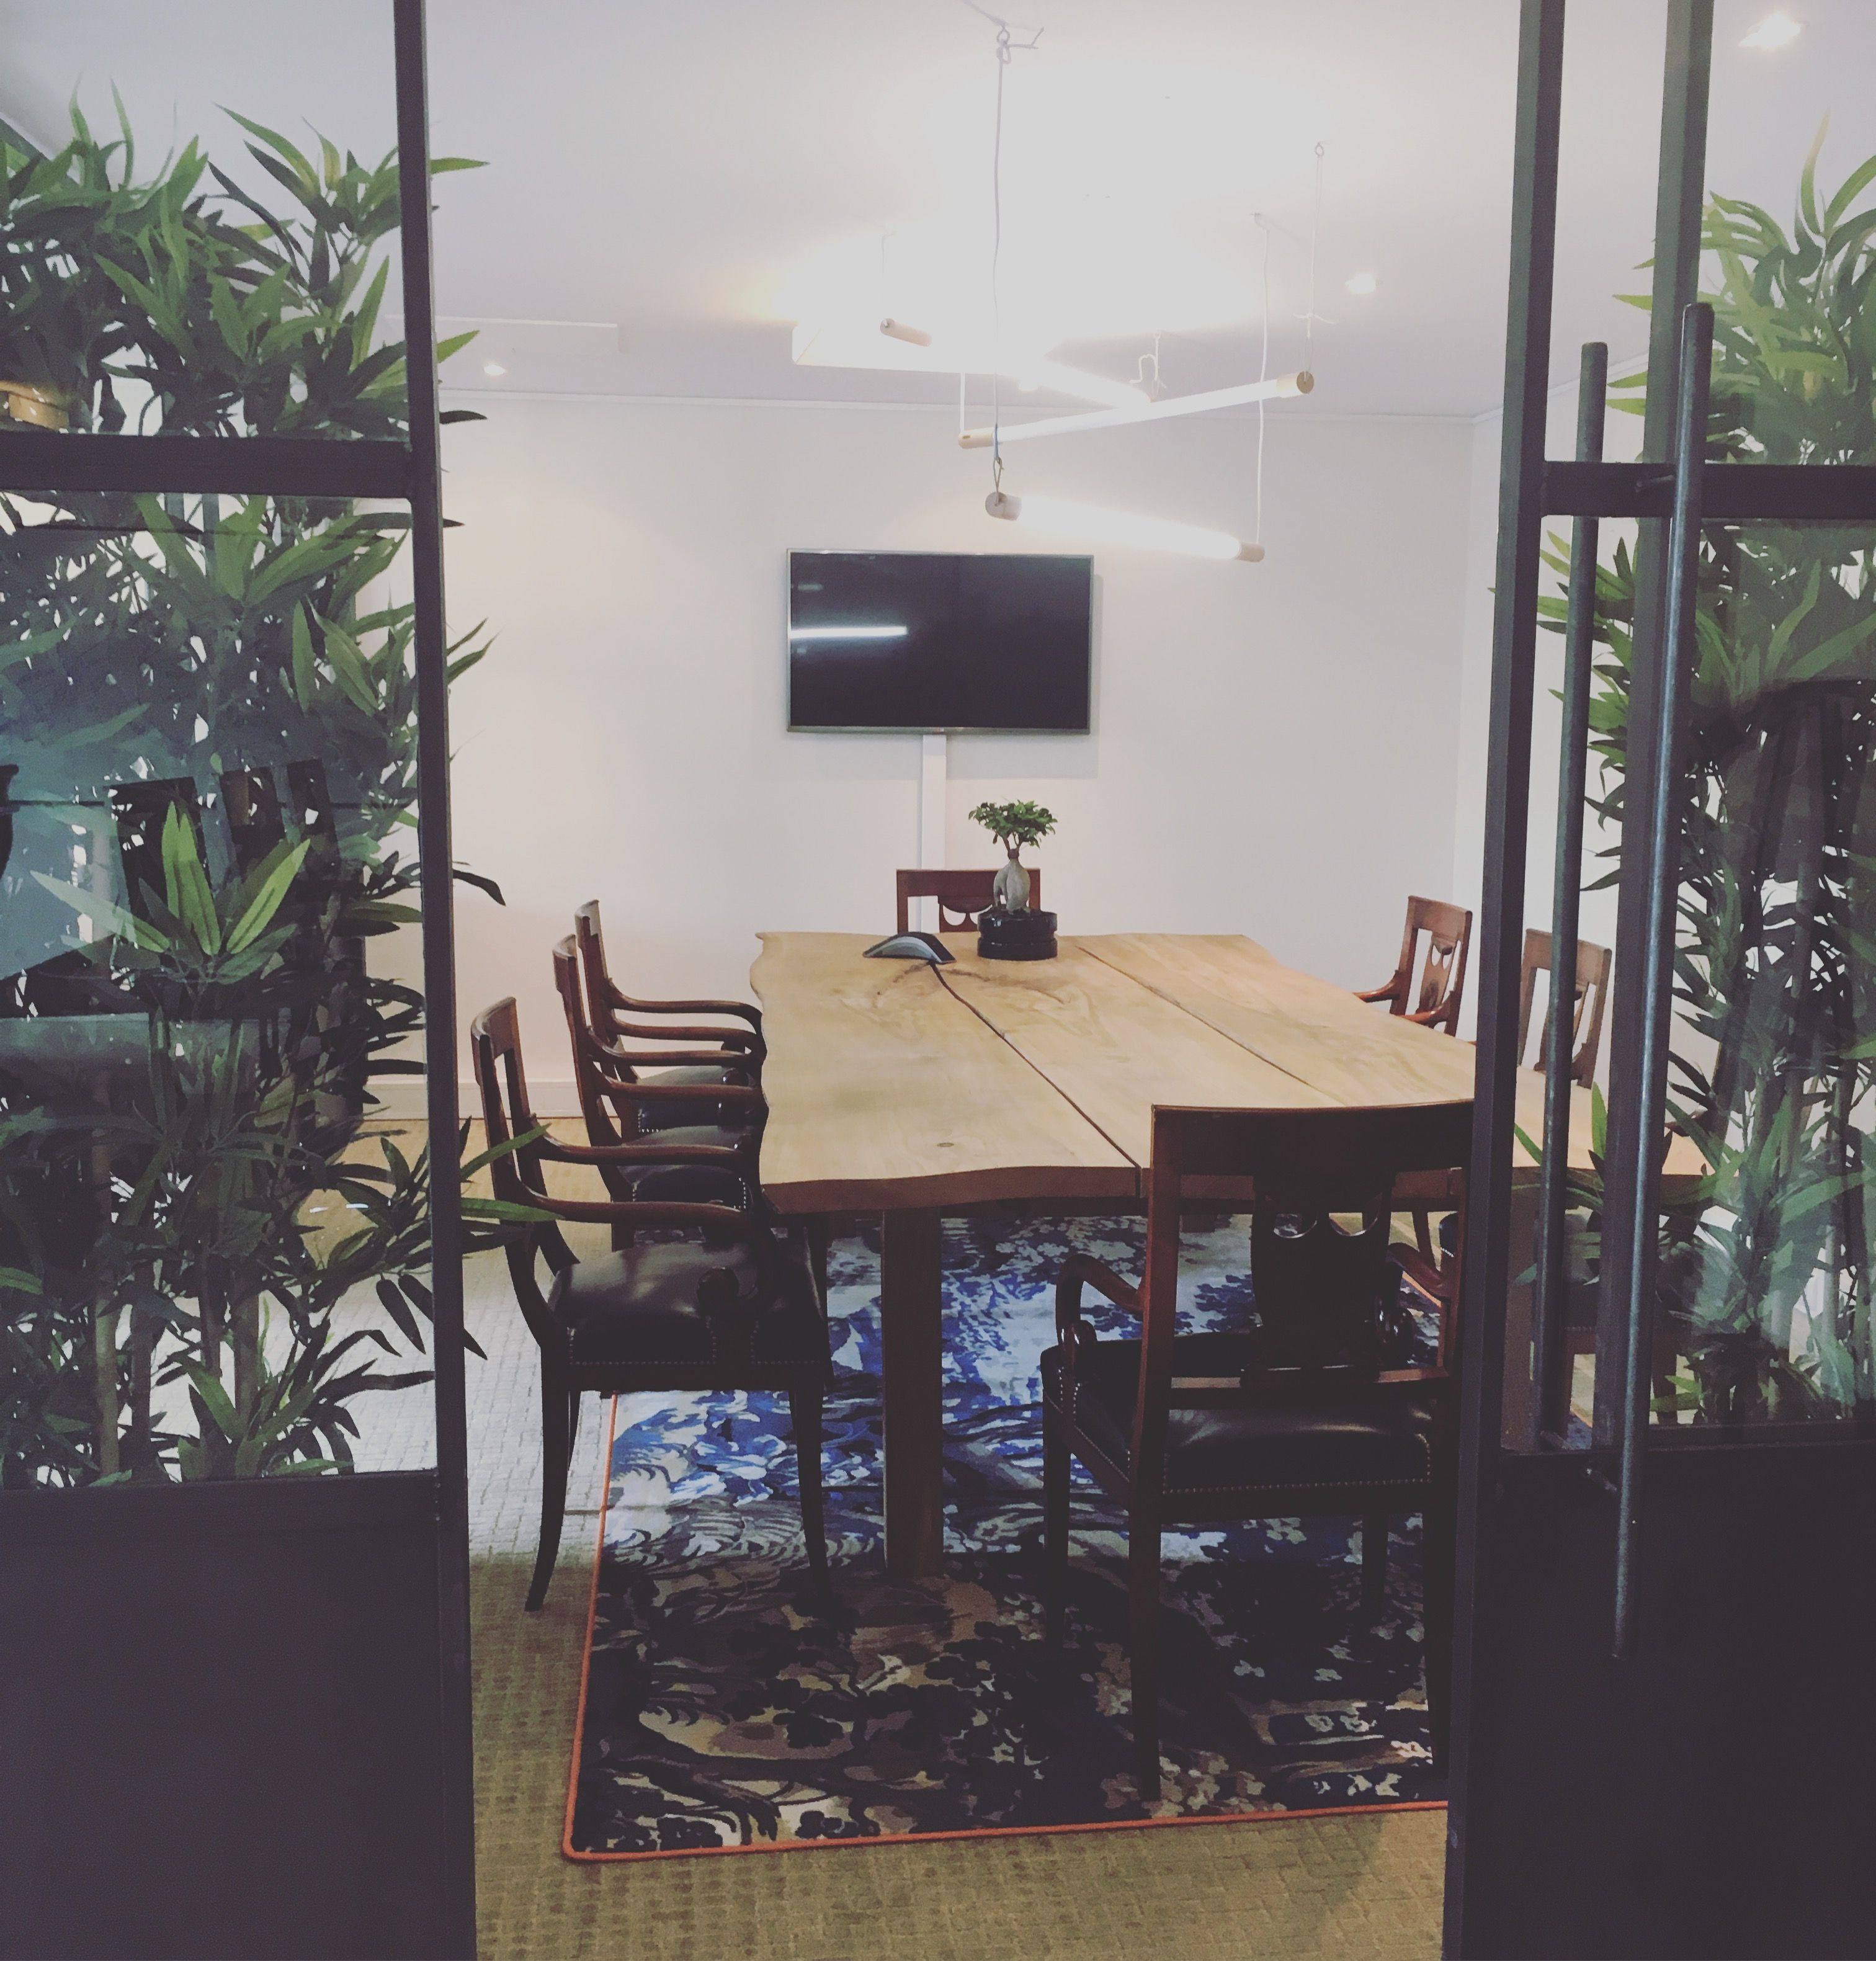 Interior design project i did for Kobi digital. Office space in Amsterdam canals. Studionanouk.nl